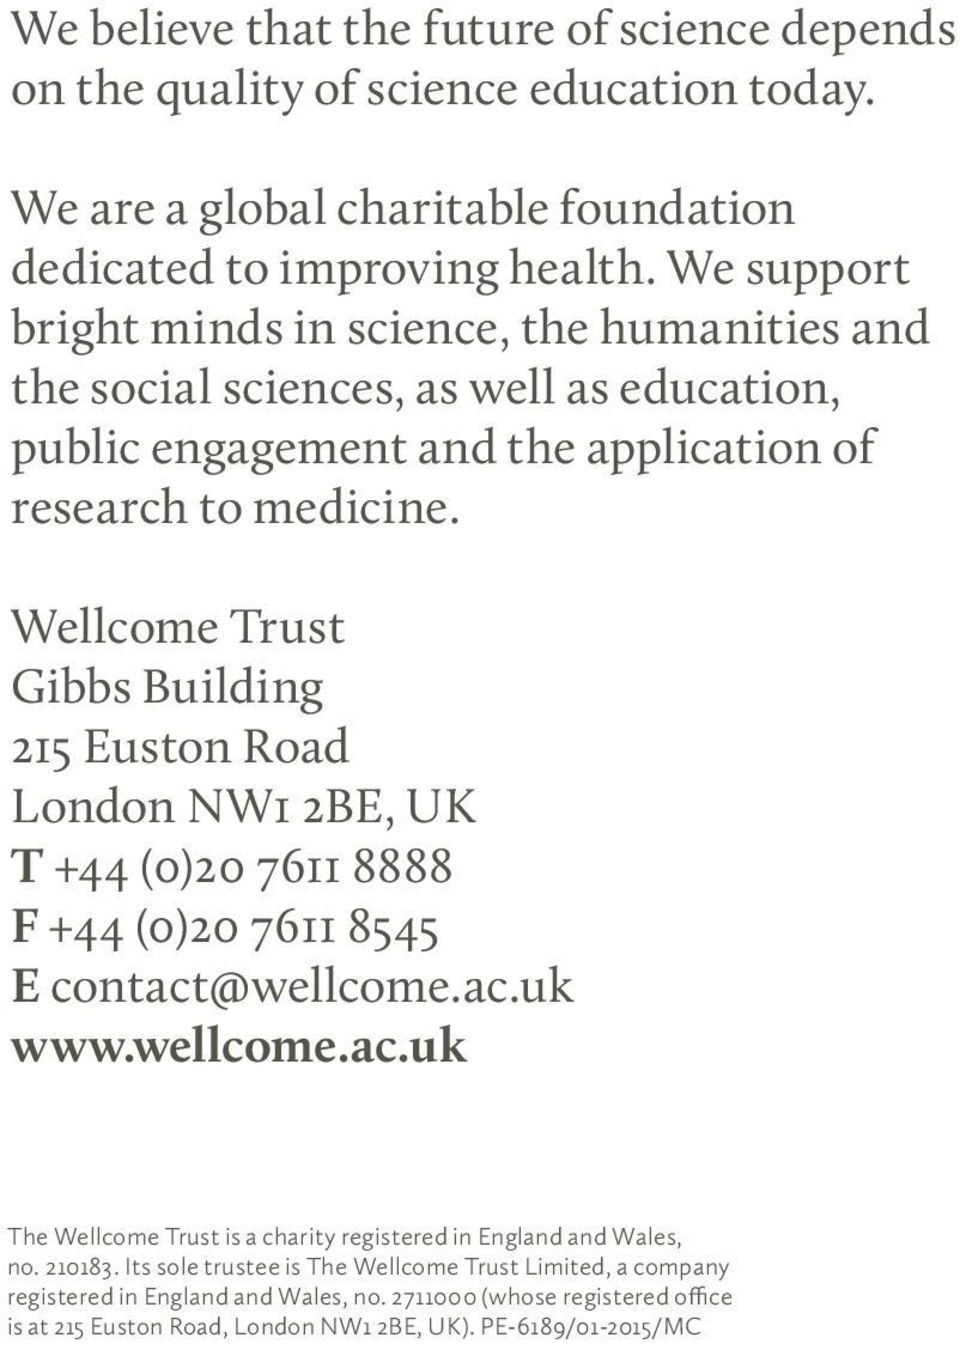 Wellcome Trust Gibbs Building 215 Euston Road London NW1 2BE, UK T +44 (0)20 7611 8888 F +44 (0)20 7611 8545 E contact